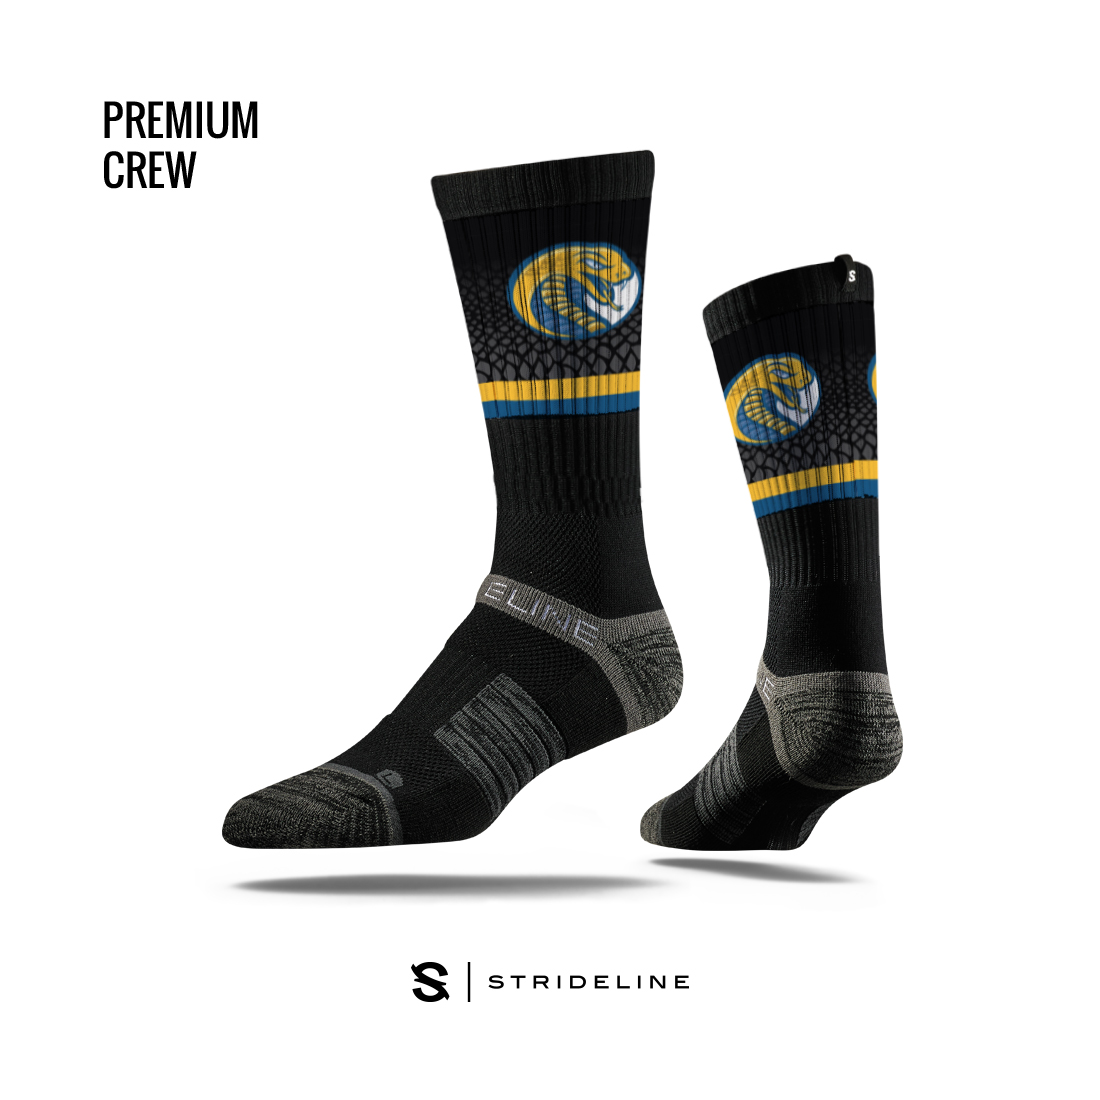 Cover Image For Socks BLACK STRIDELINE SOCKS